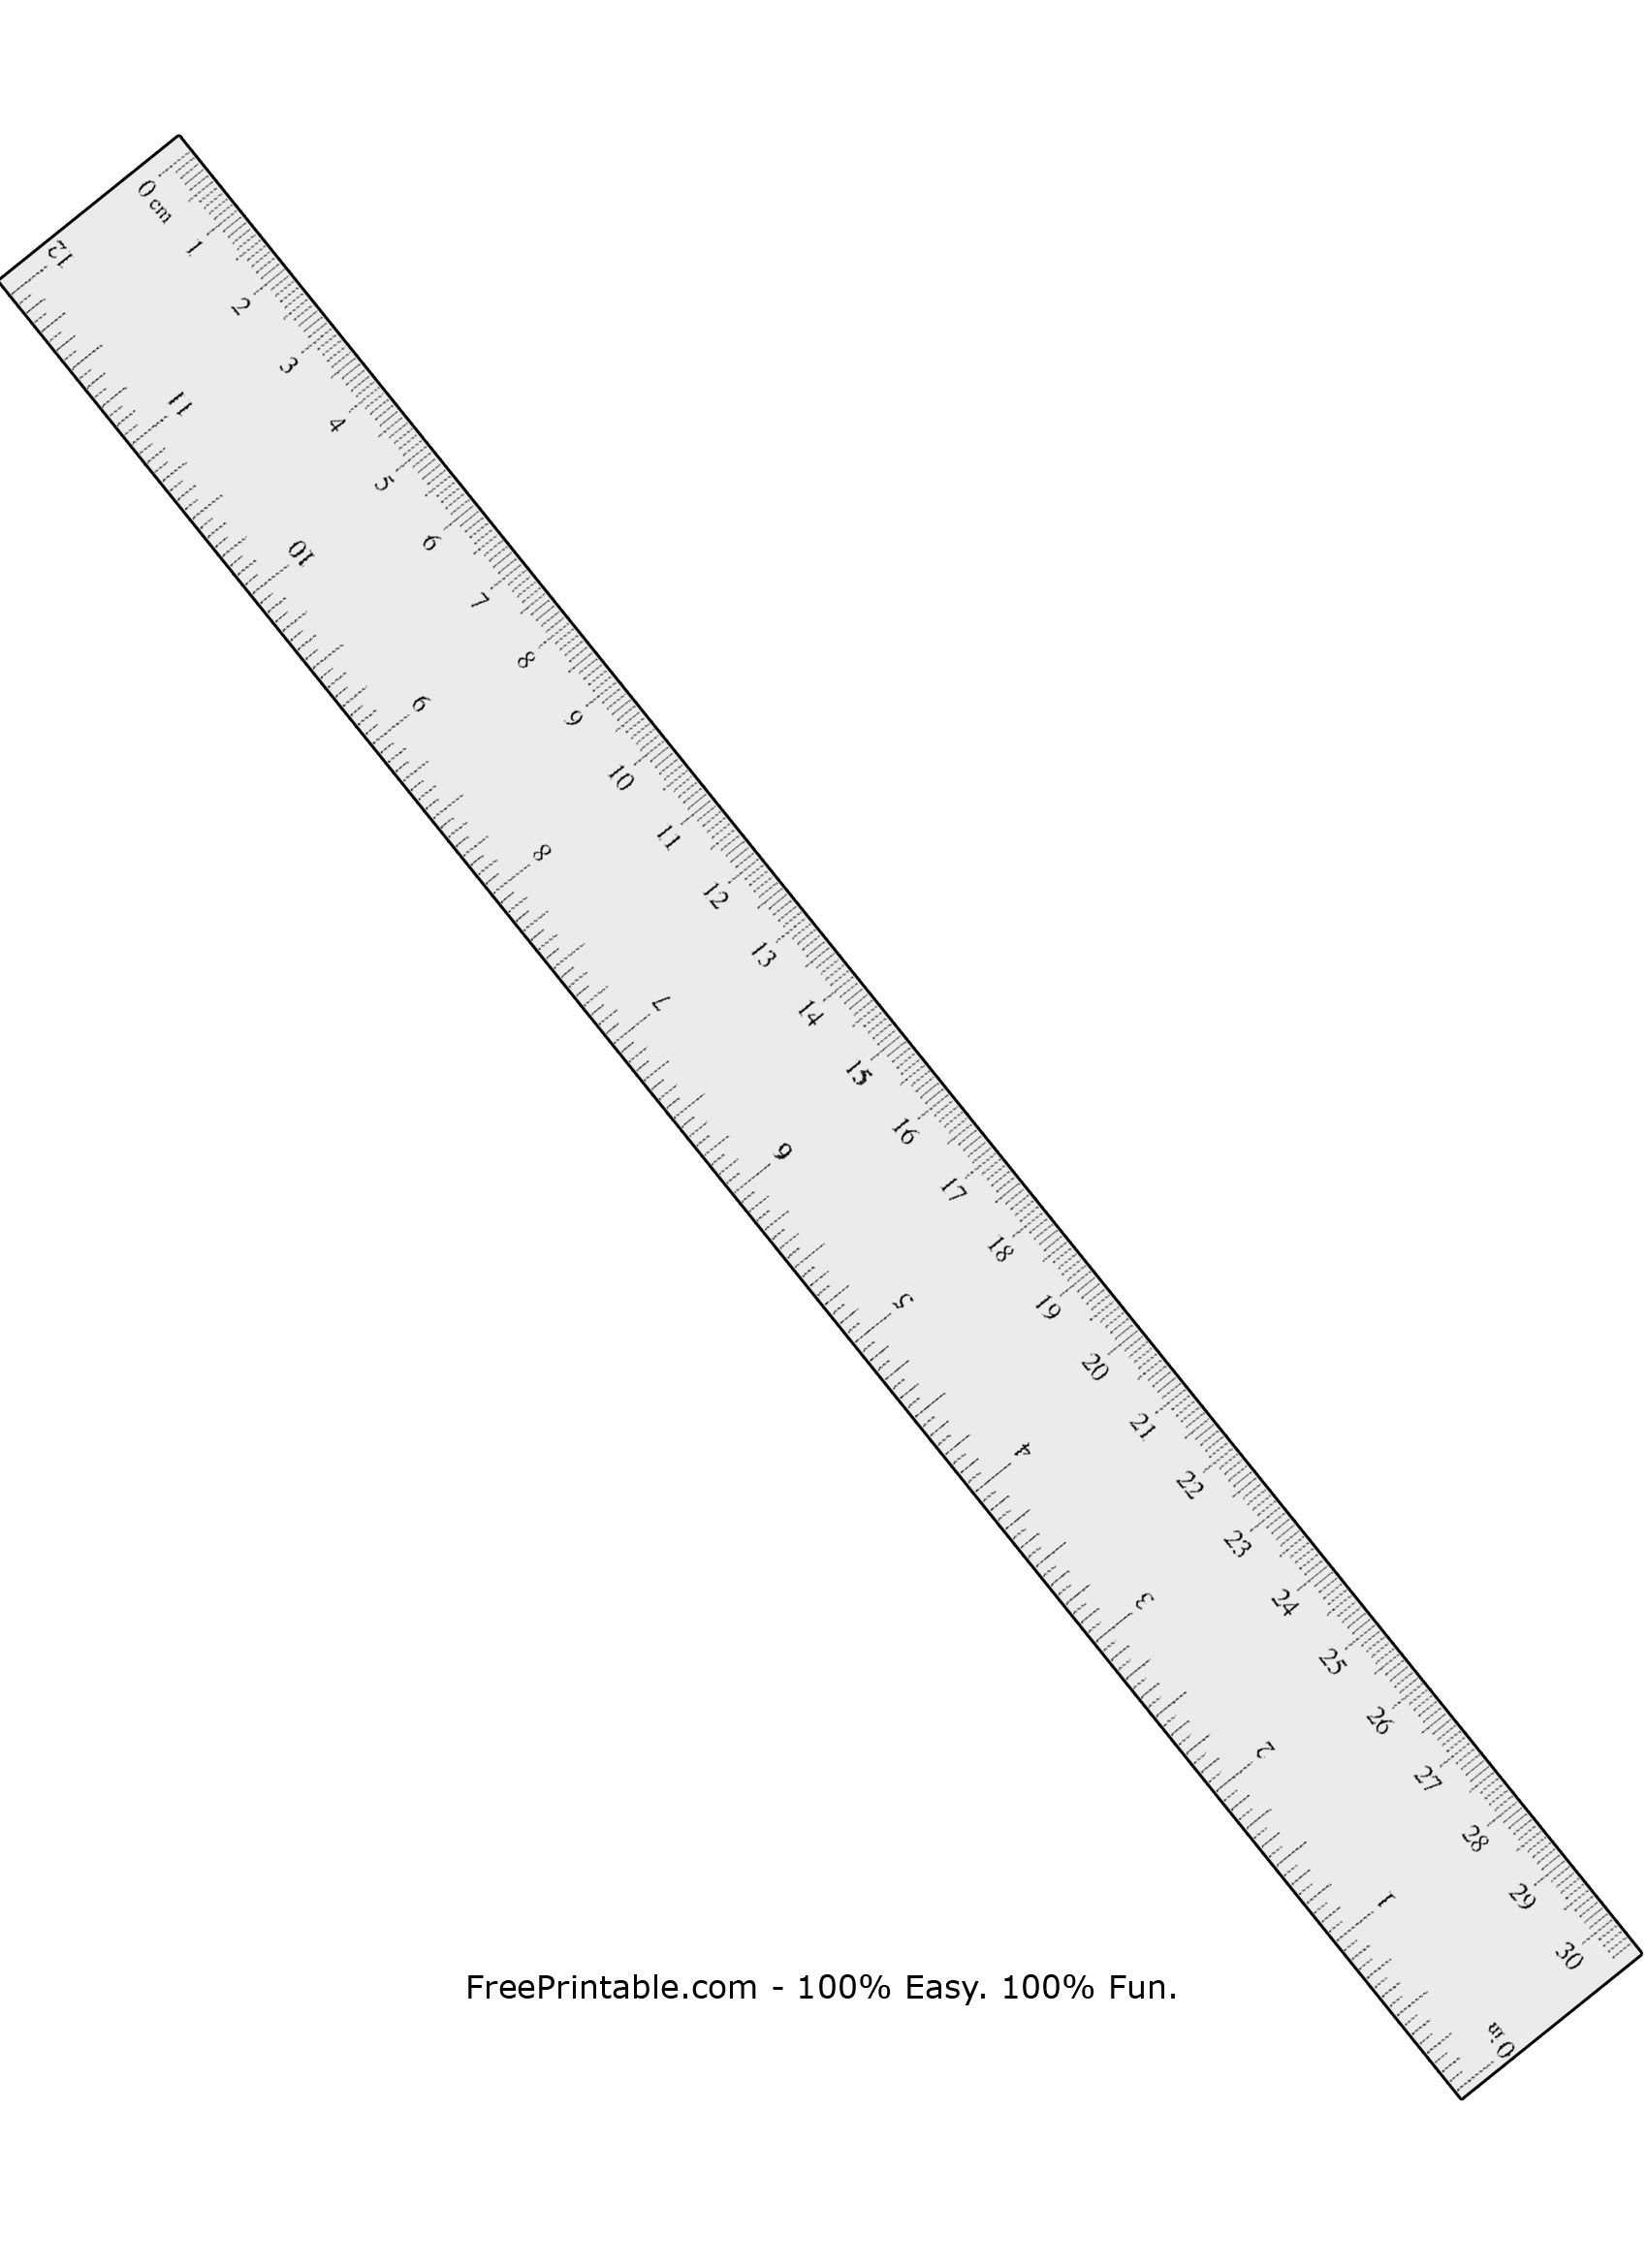 Rulers To Print For Free | Recent Headlines Steve Harvey Morning - Free Printable Ruler